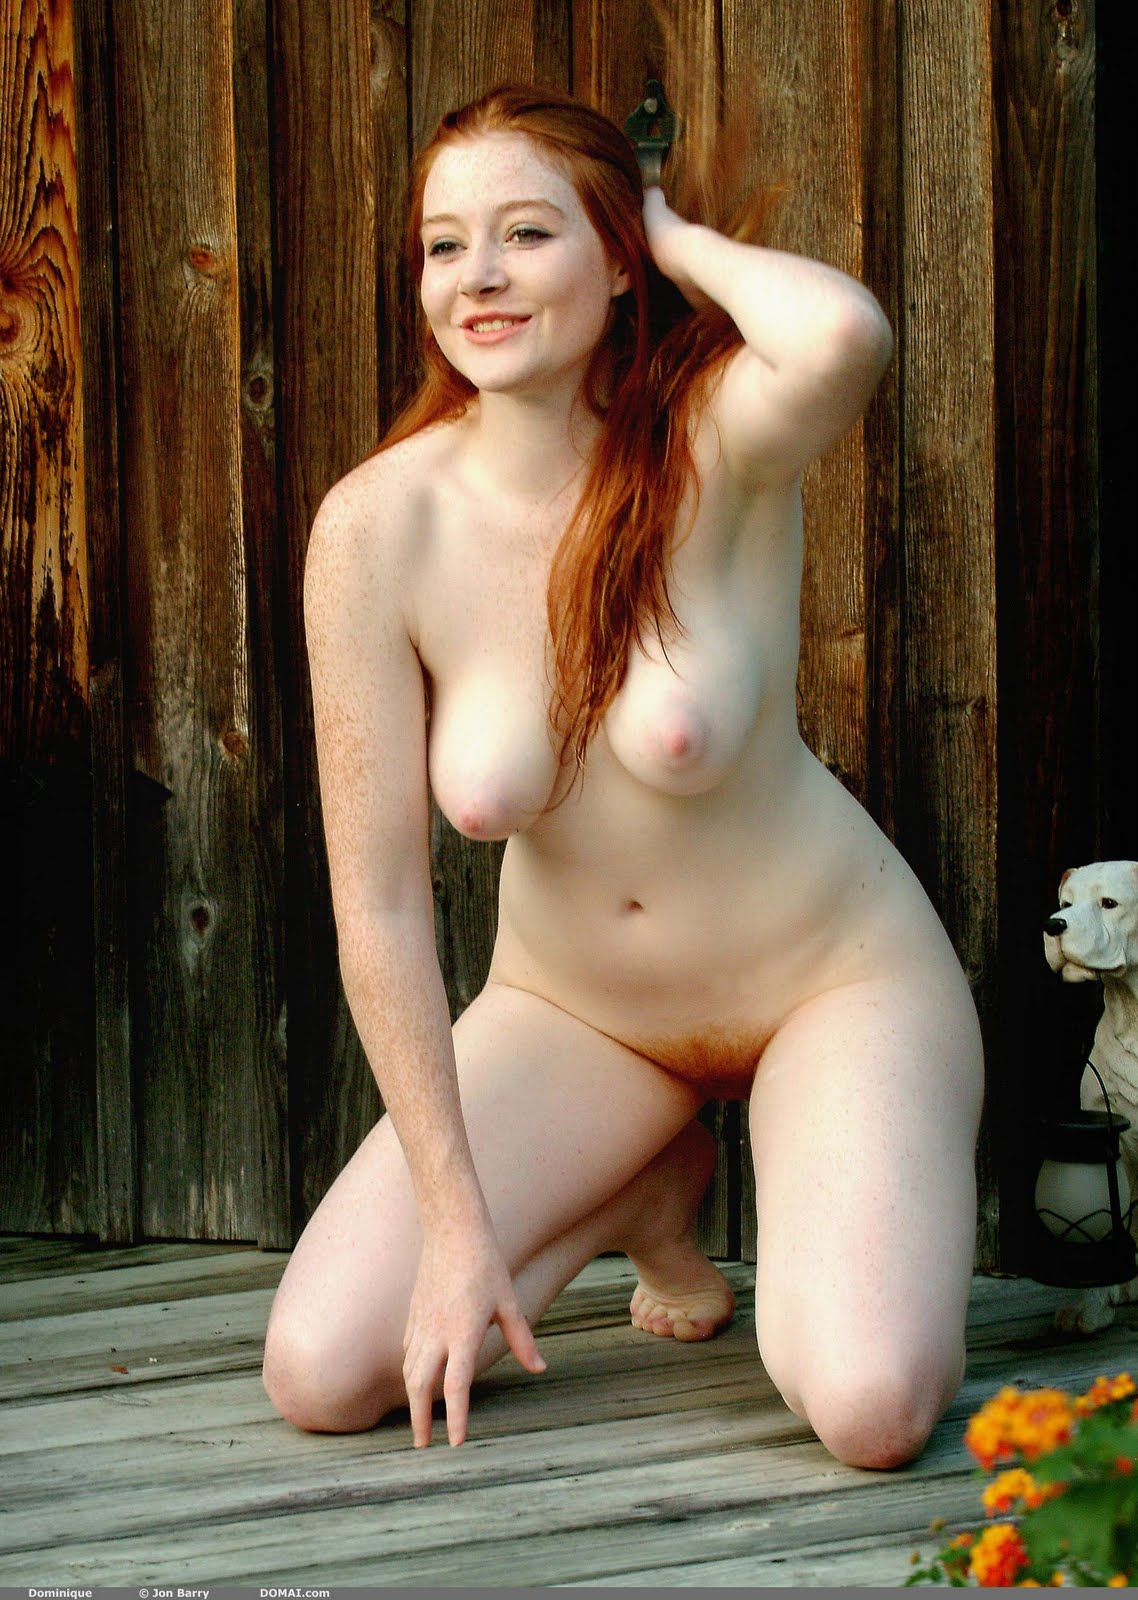 highschool of the dead porn pics Bentover, Bodacious, Bush, Dominiquesorribes, Dominiquesorribes, Firebush, Freckles, Freckles, Freckles, Freckles, Ginger, Ginger, Gingerminge, Muff, Nude, Nude, Outdoors, Outdoors, Pale, Pale, Paleareolas, Palenipples, Paleskin, Pendulous, Redhair, Redhead, Redhead, Redhead, Tolsbusty, Tolsredhead, Welcomemat, Ysitm